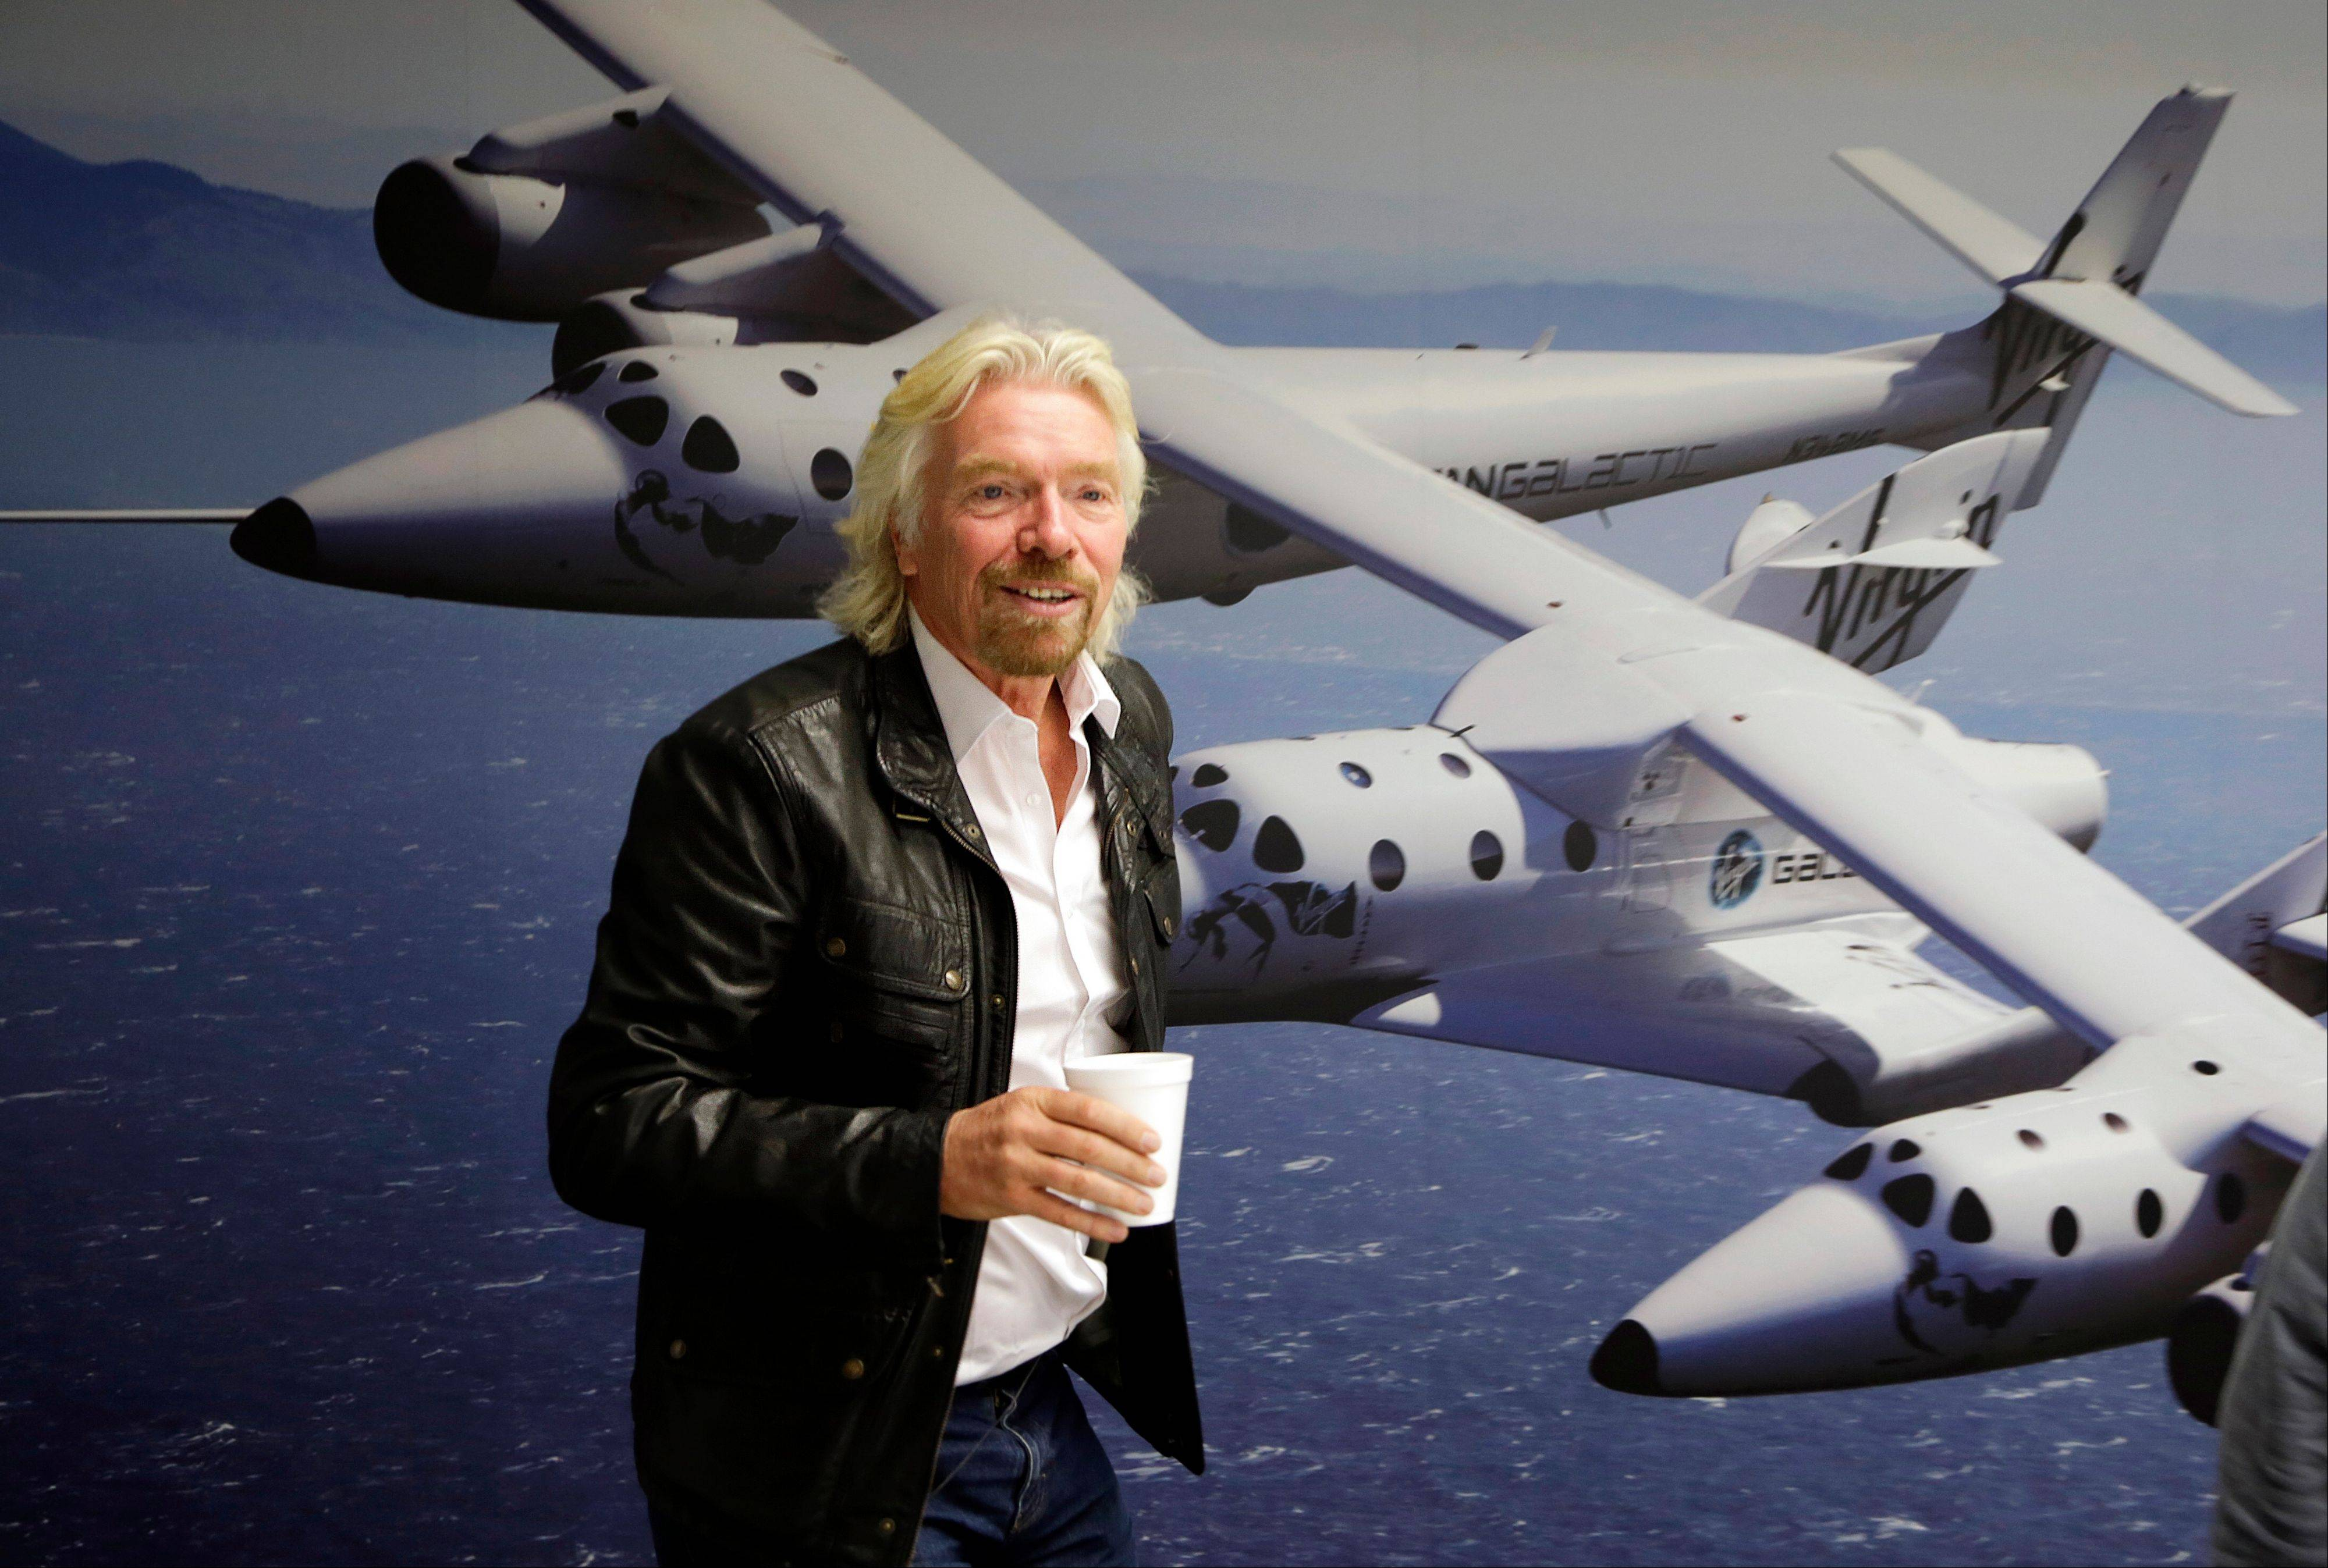 NBC announced Friday it has signed a deal with Richard Branson�s Virgin Galactic to televise the company�s first commercial space flight next year. The launch will be part of a three-hour special �Today� show.